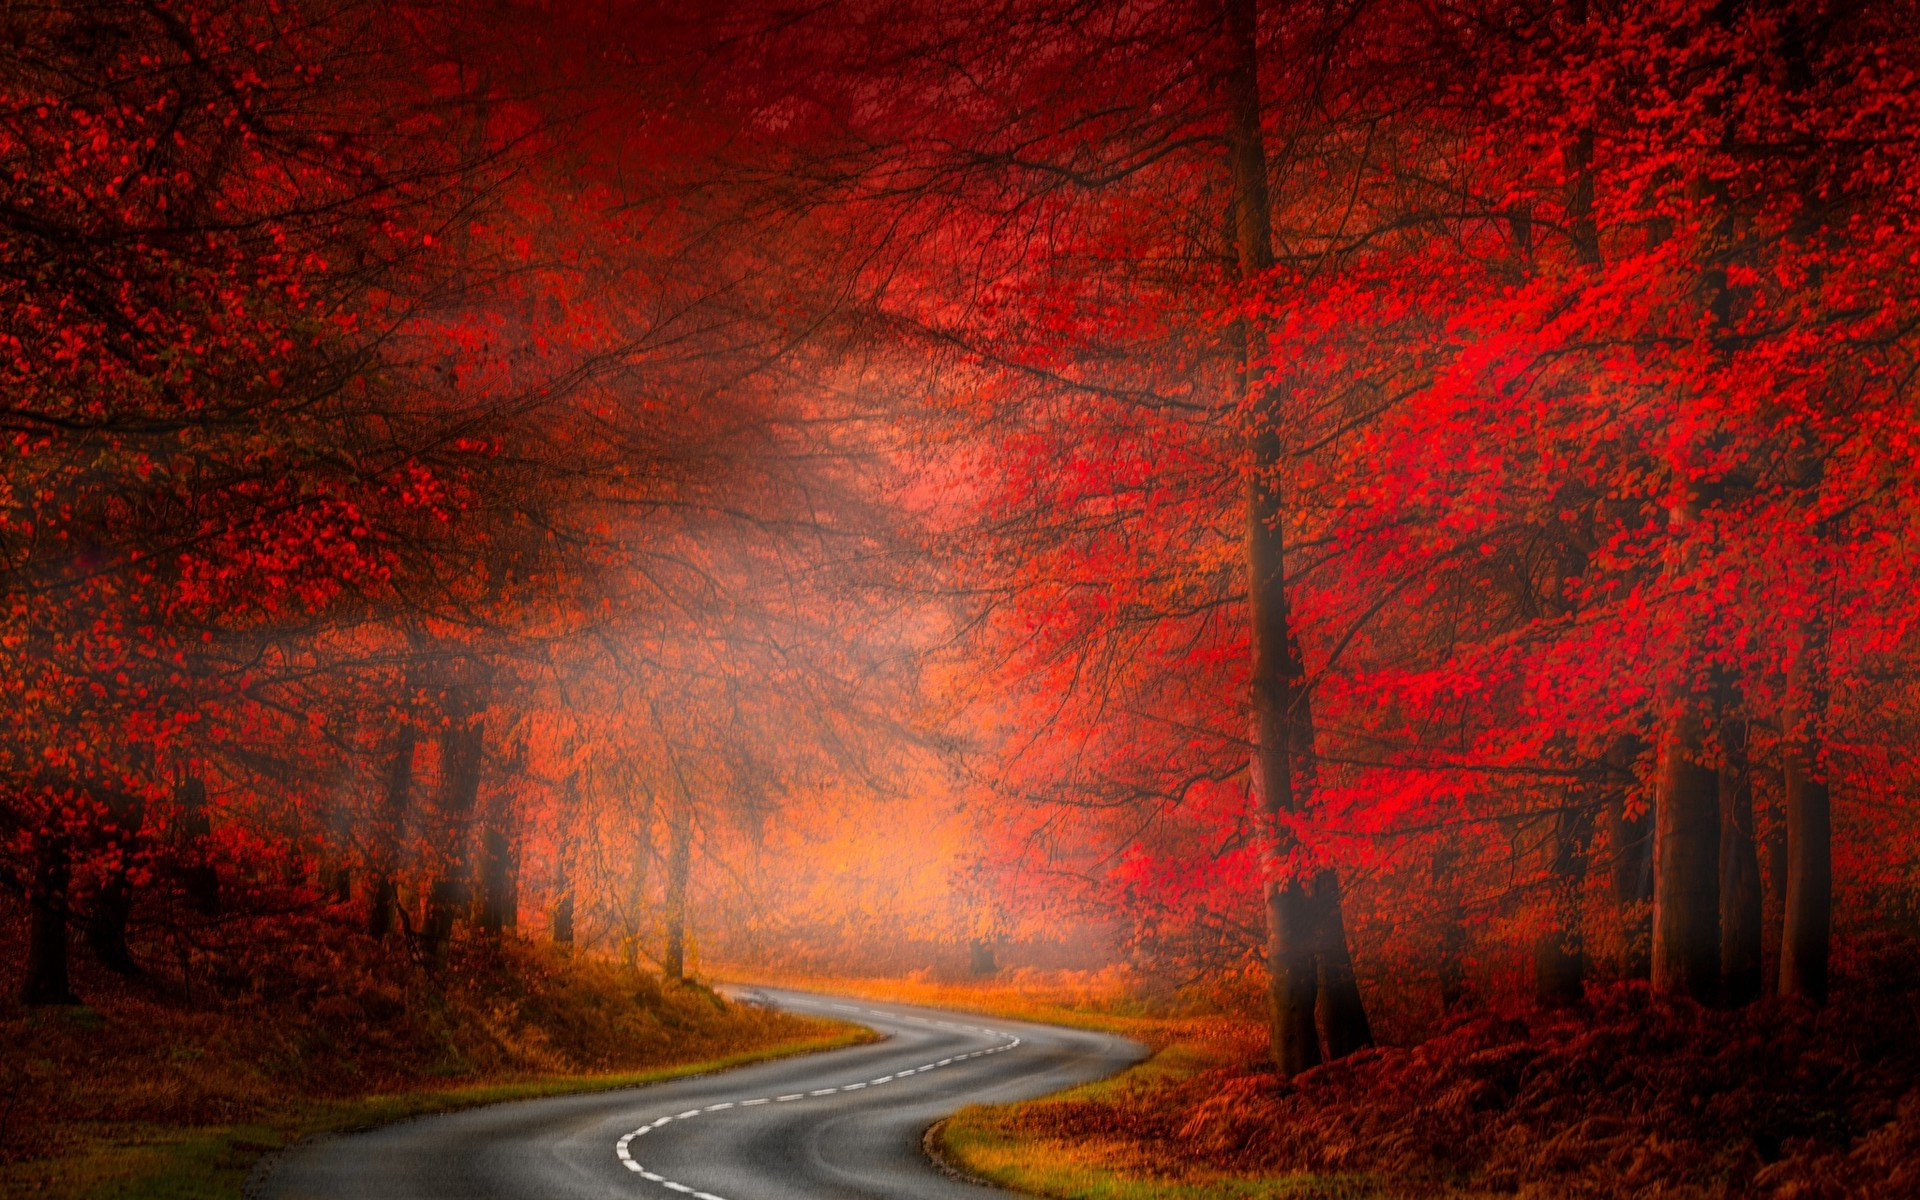 Fall Wallpaper For Large Monitors Misty Autumn Forest Road Hd Wallpaper Hintergrund